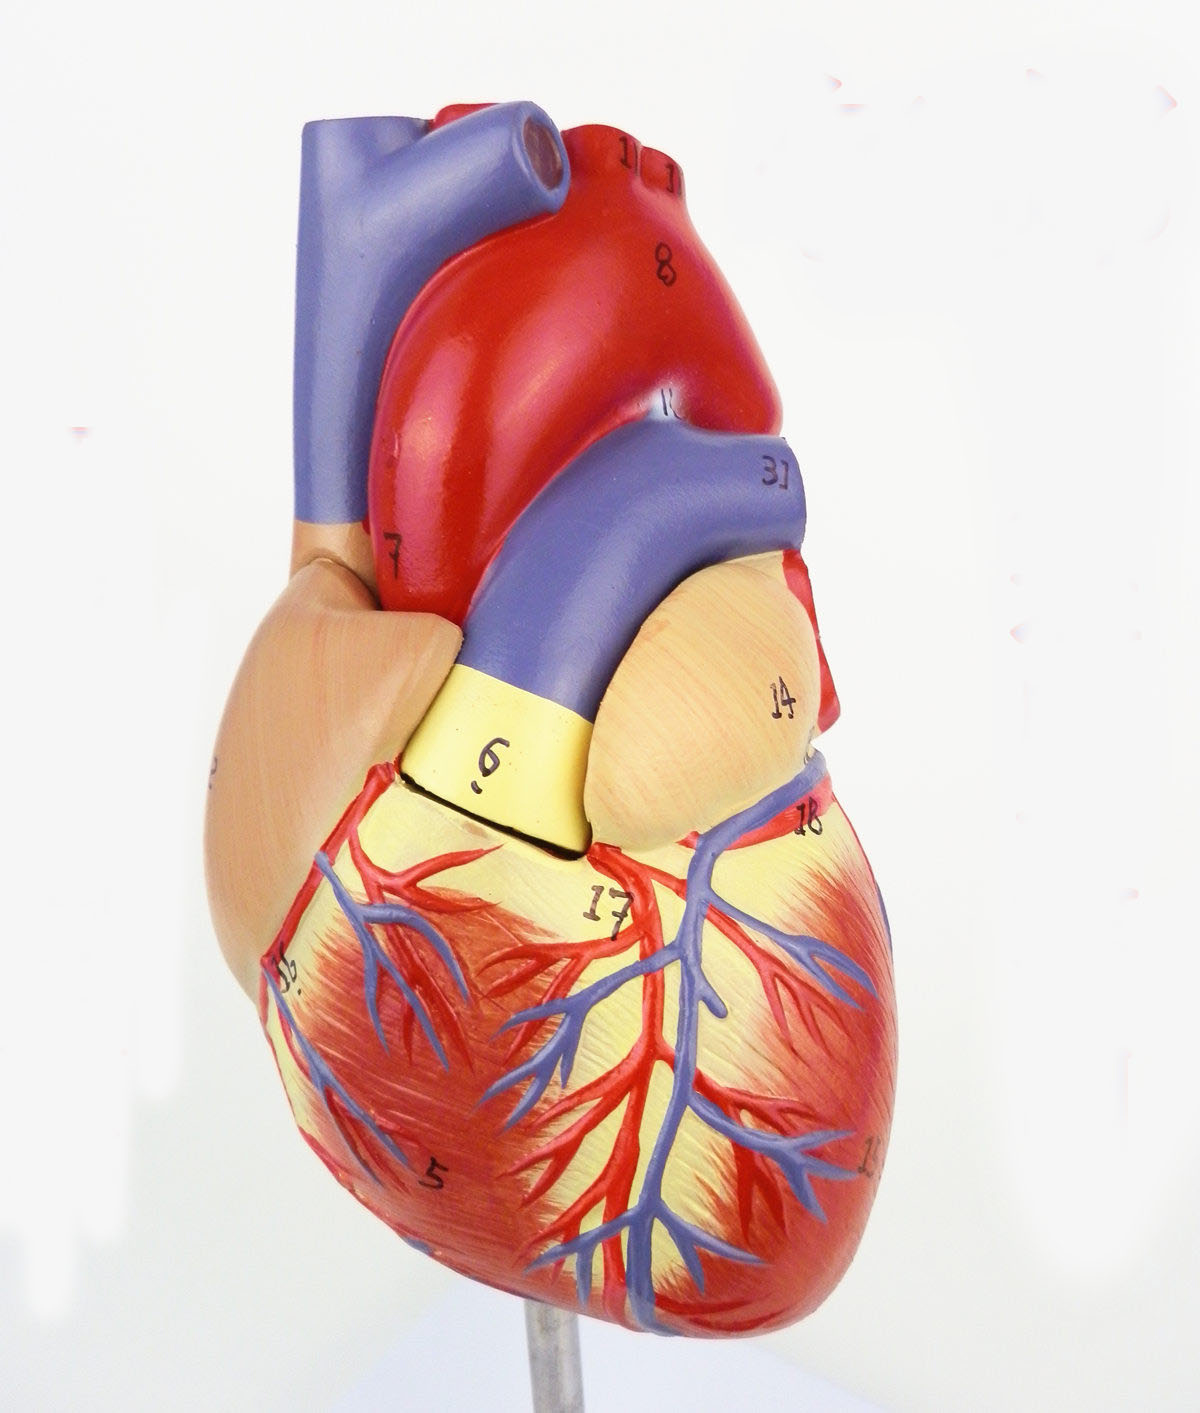 quality original heart anatomy model 2 parts 1: 1 heart model with ...